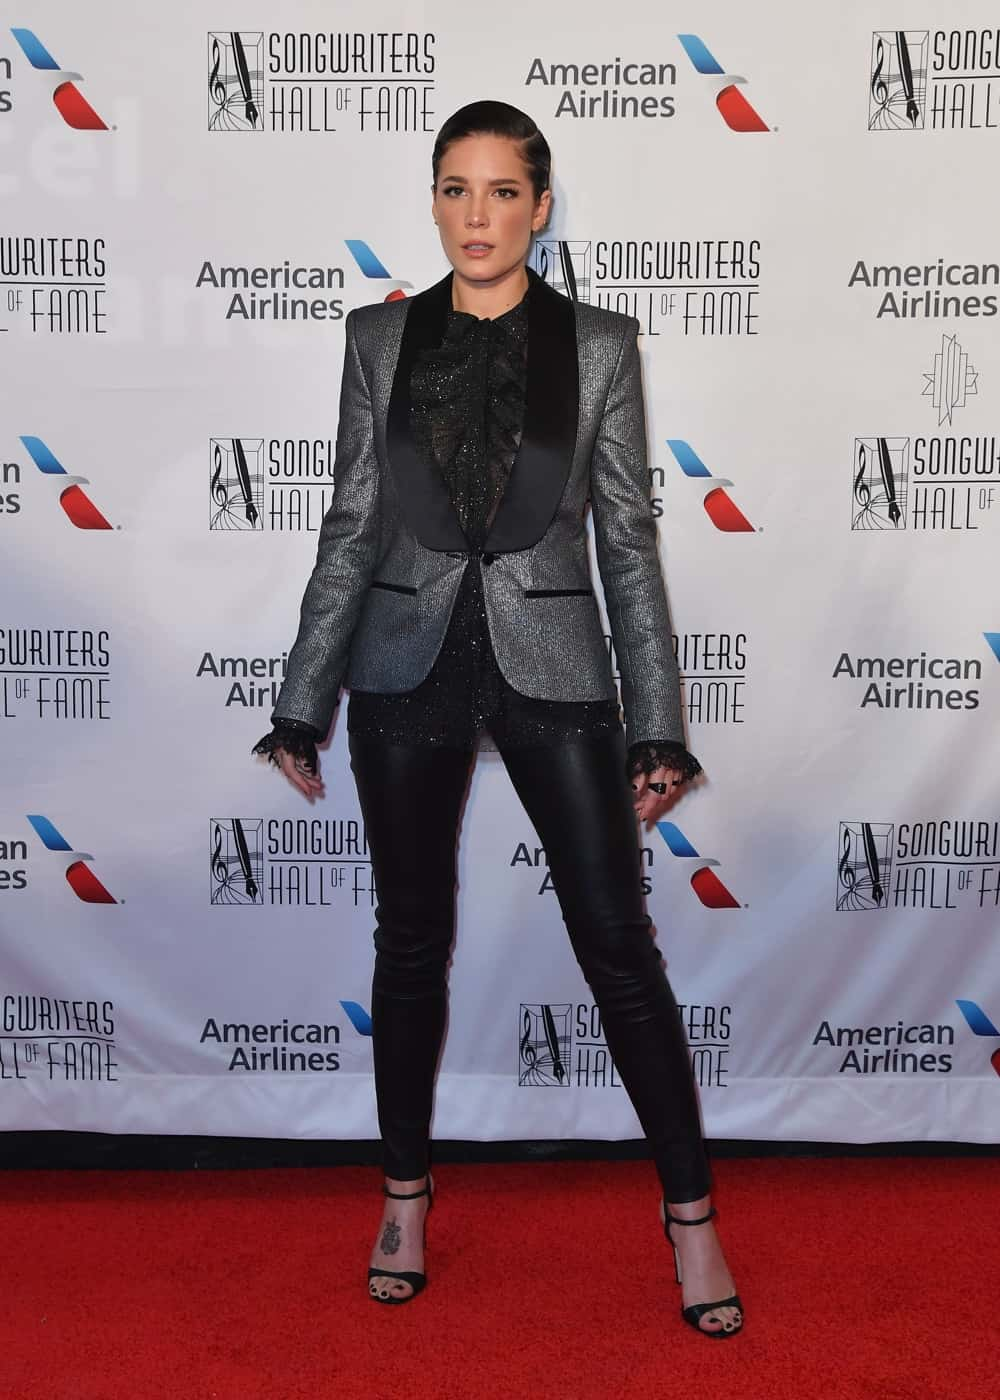 Songwriters Hall Of Fame 50th Annual Induction And Awards Dinner - Arrivals